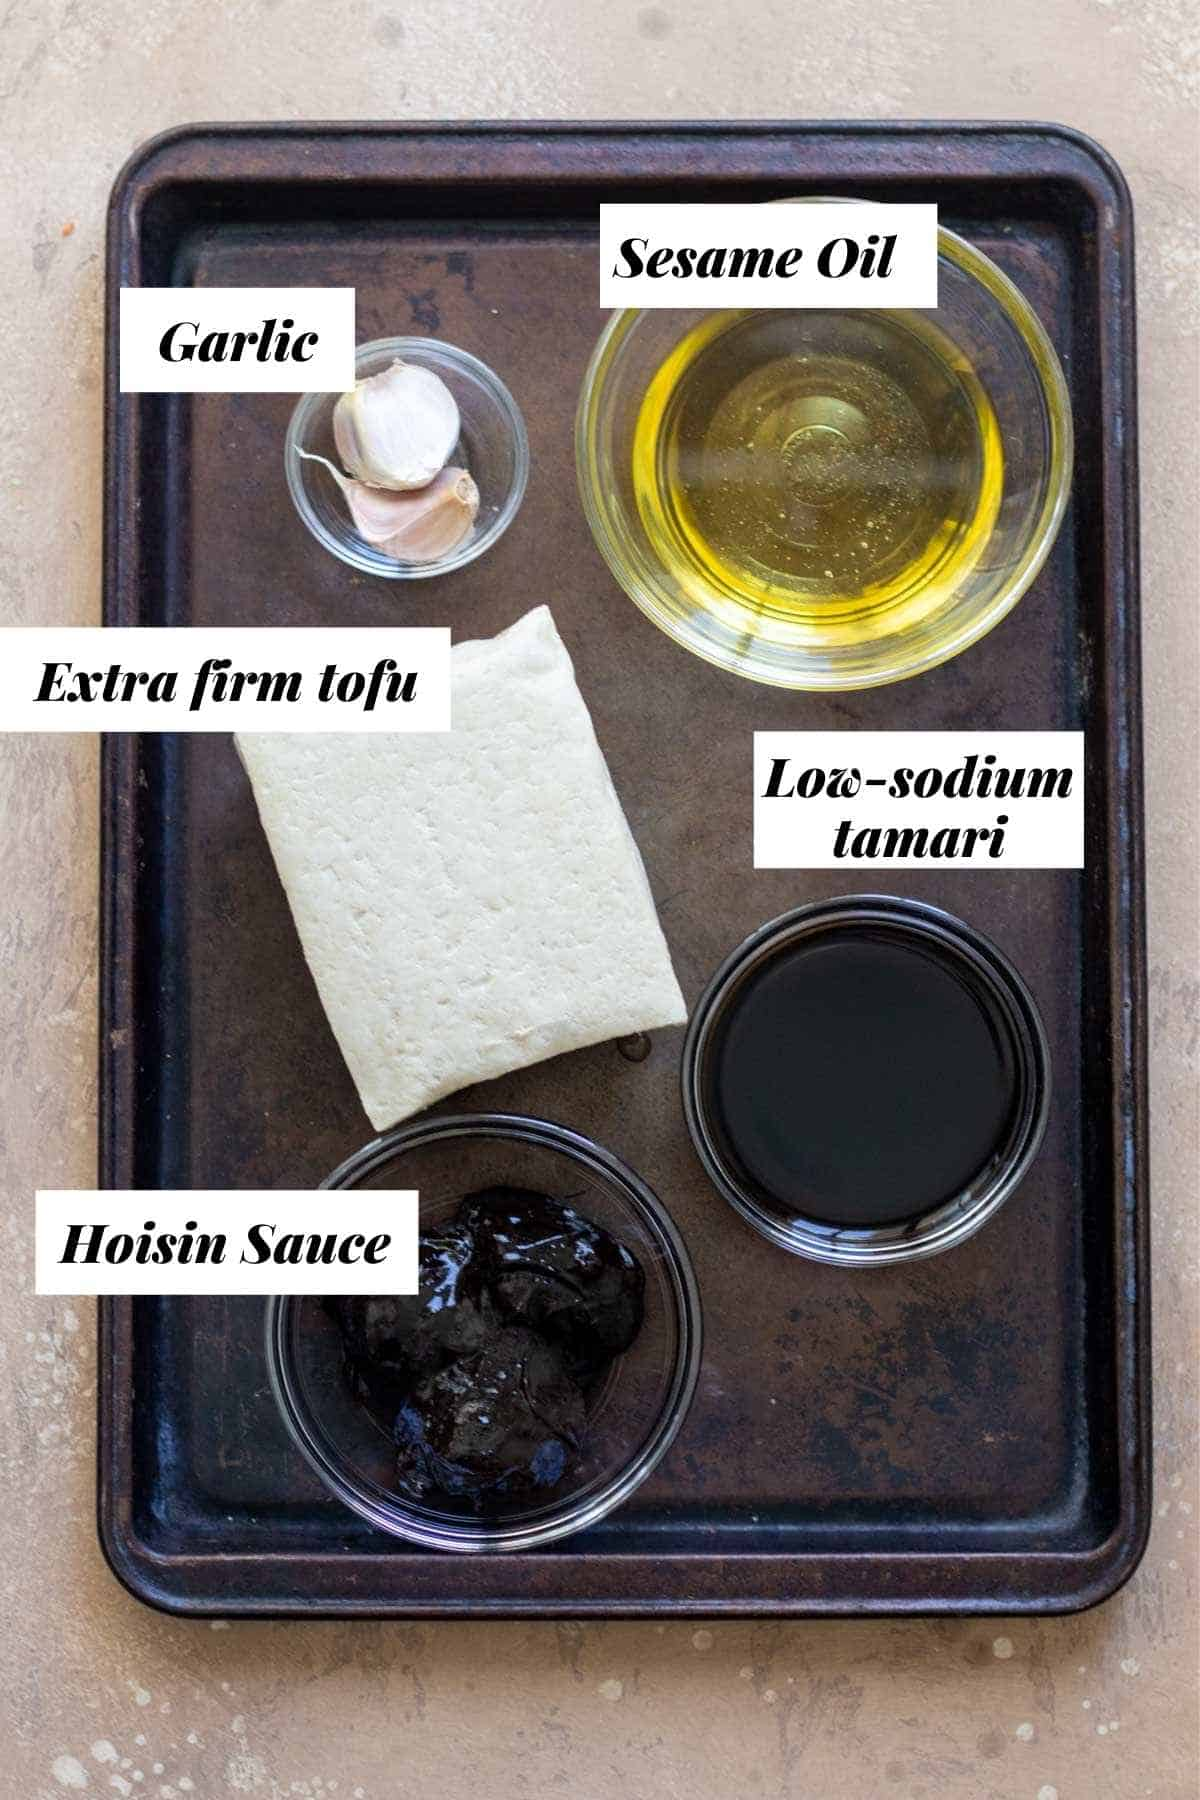 Ingredients needed to marinade the tofu for pan frying measured into glass bowls on cookie sheet.